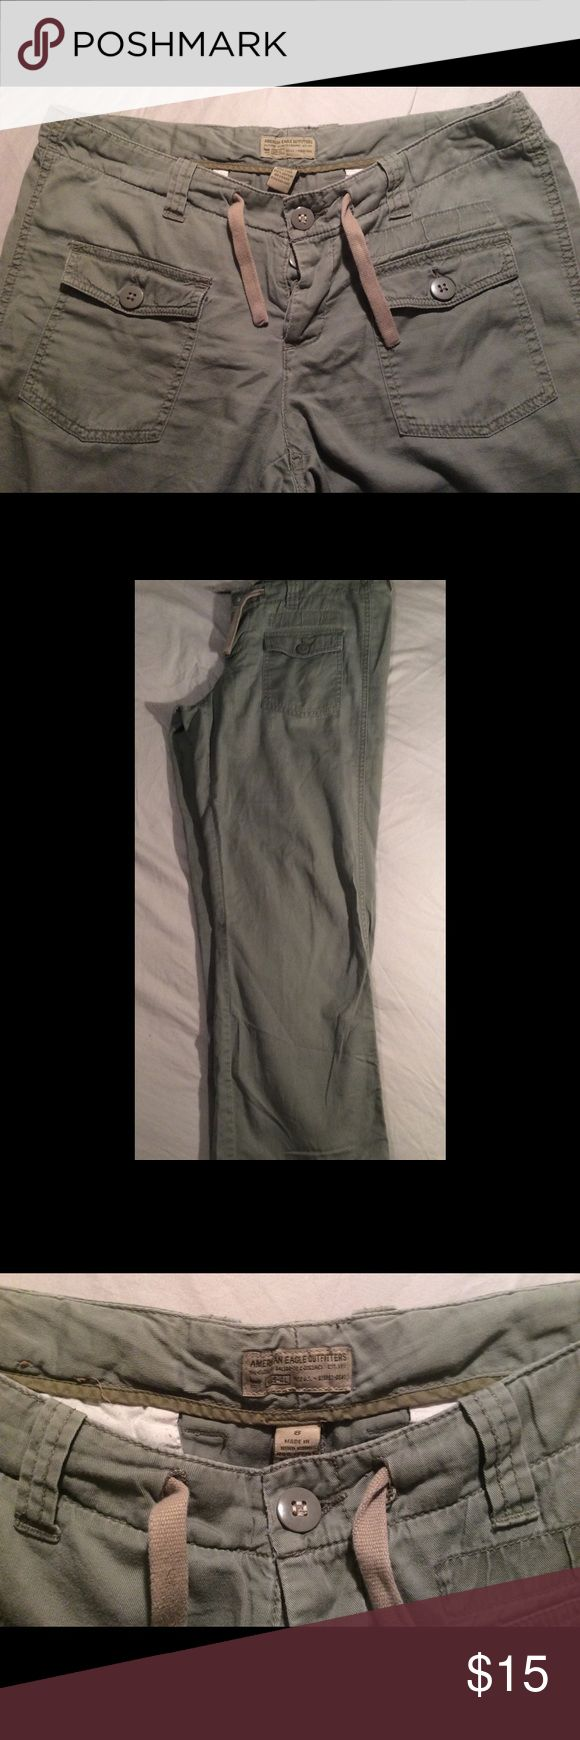 American Eagle Combat 3rd Division Pants Size 8 American Eagle Combat 3rd Division Pants Size 8.  Inseam 30. Excellent Condition!                                     There are no stains or holes in item.  The zipper works excellent and all buttons are secure.  Smoke-free and Pet-free home. American Eagle Outfitters Pants